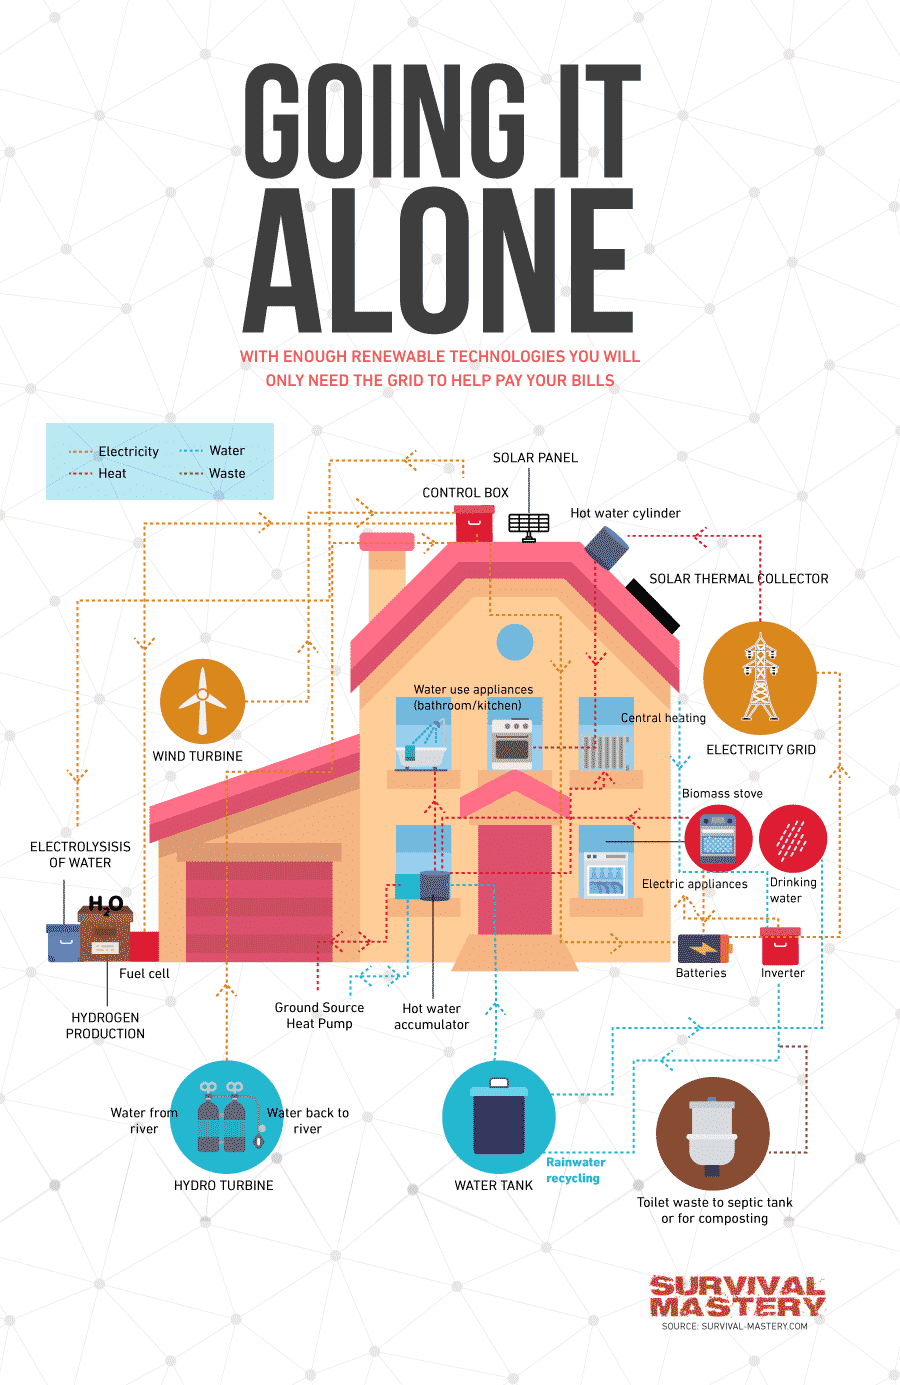 Going it alone infographic